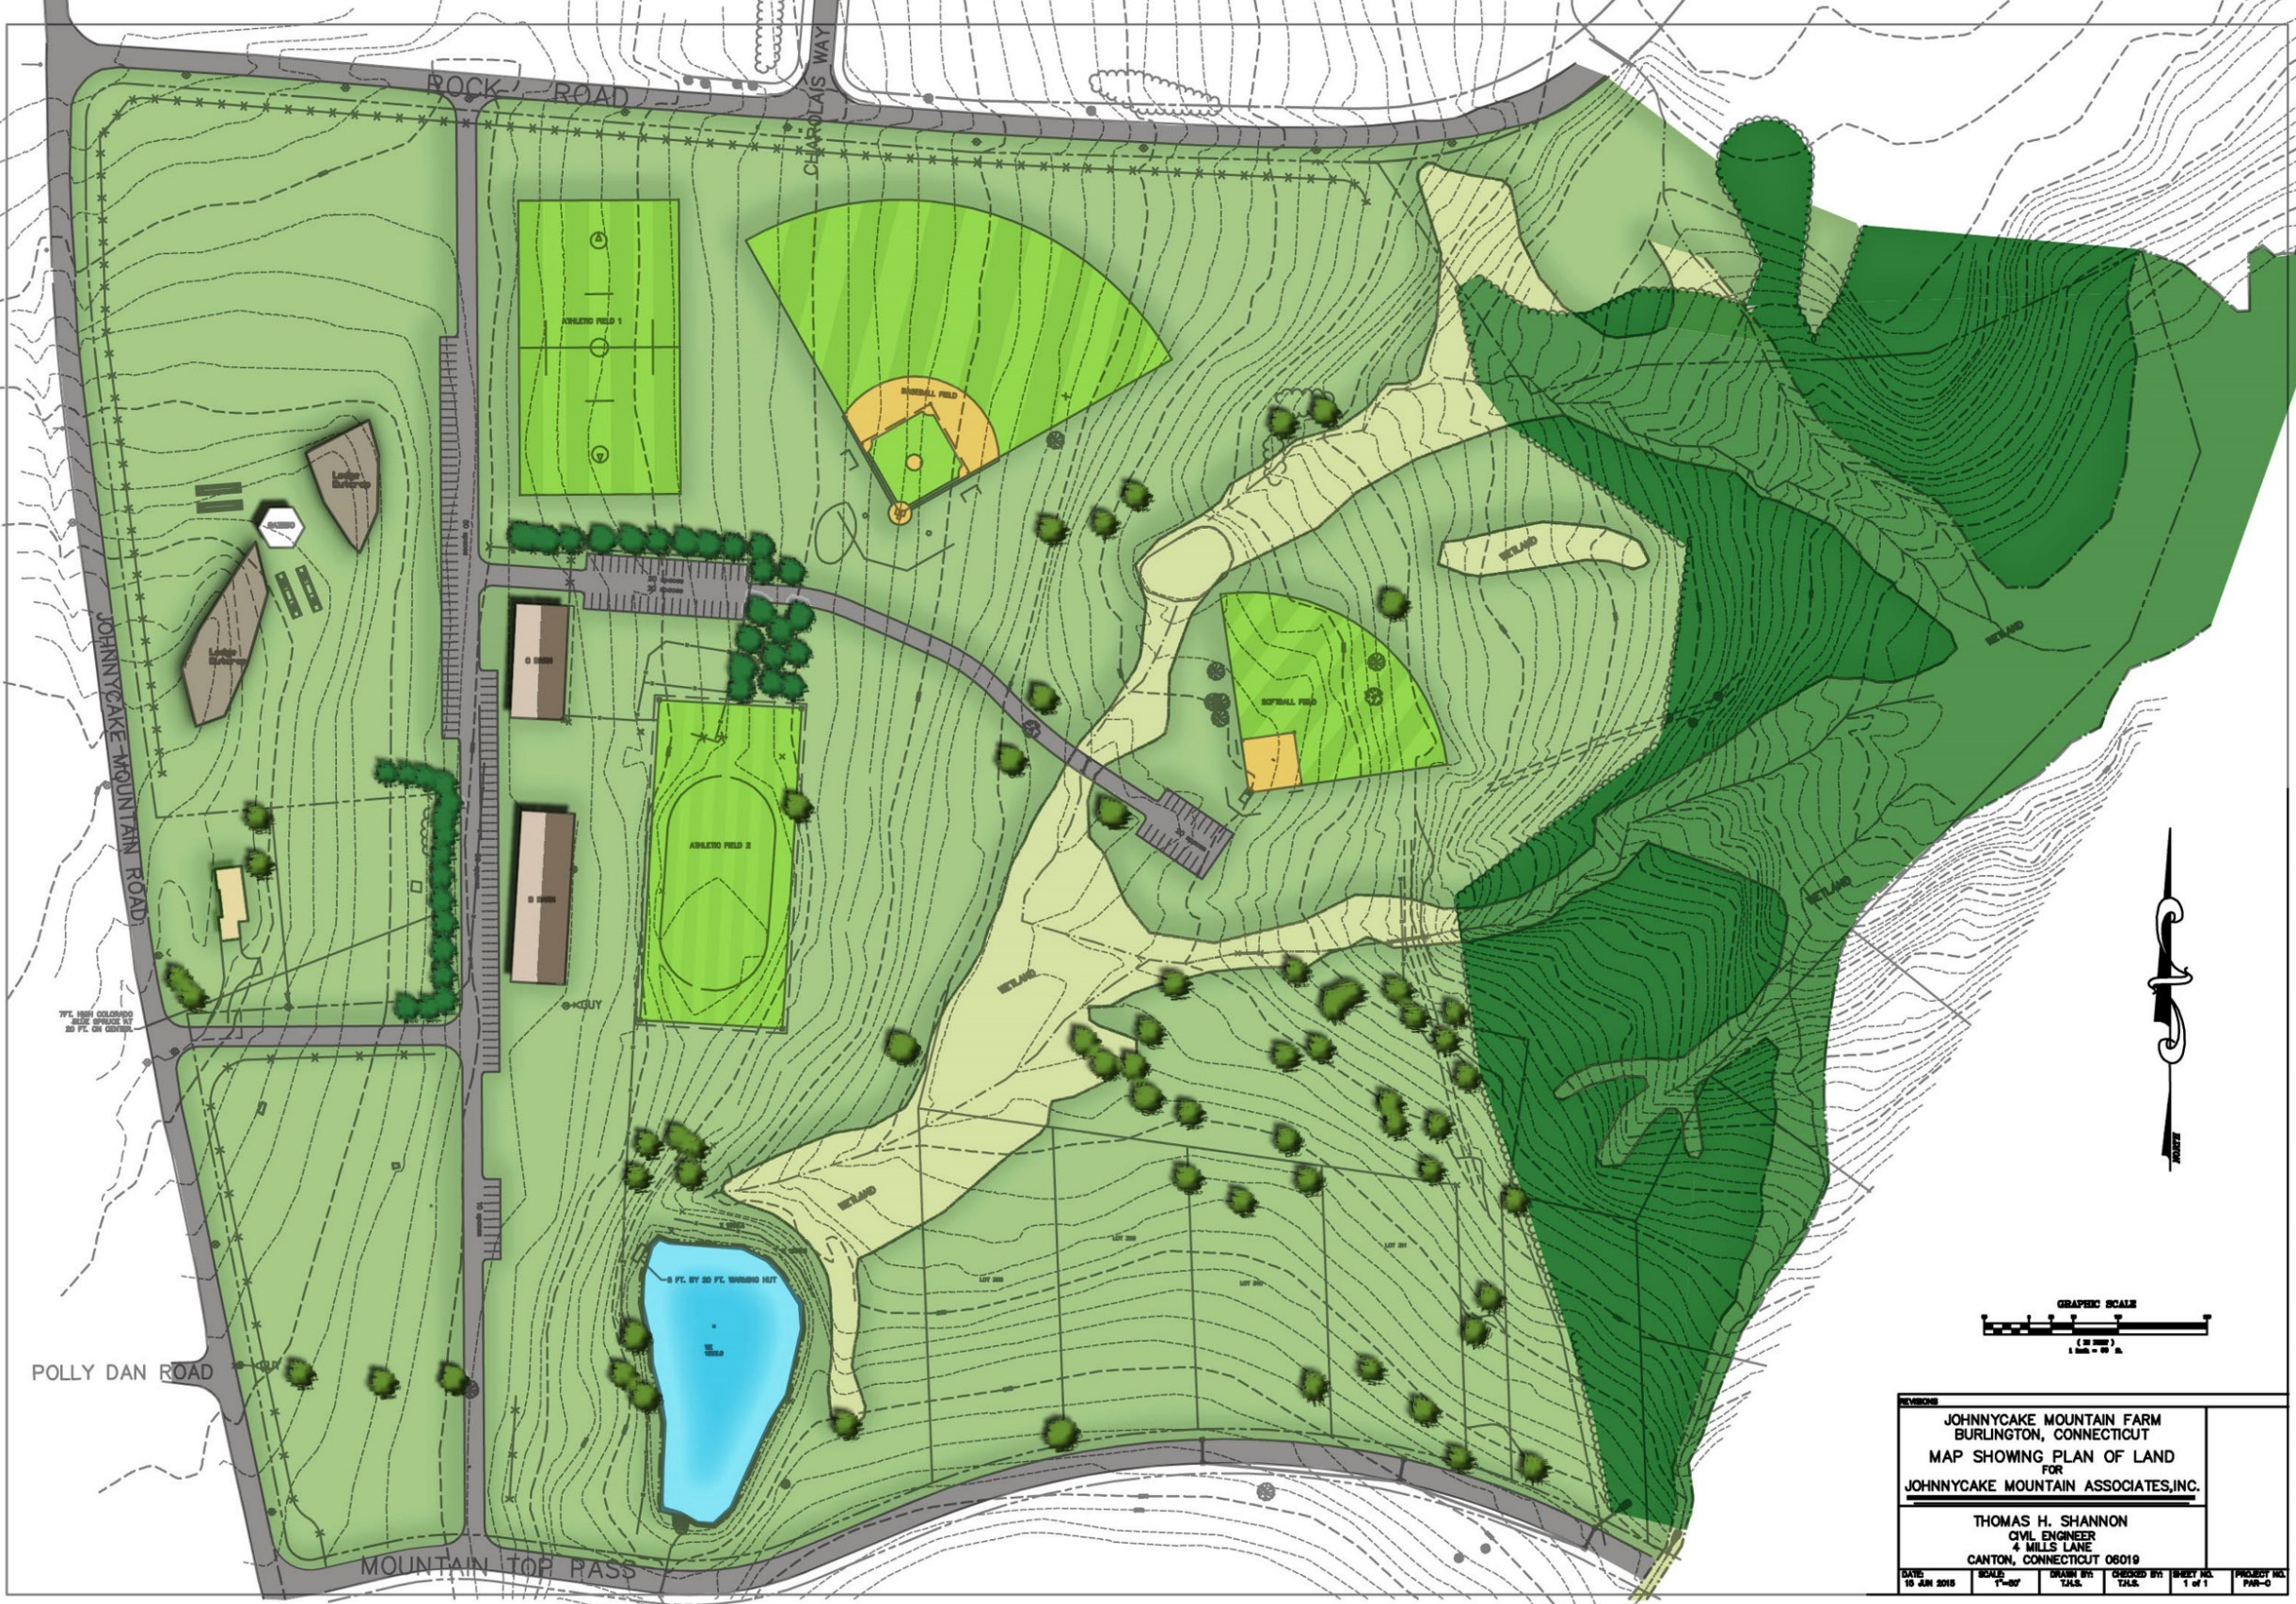 The preliminary design of the 58 acre parcel